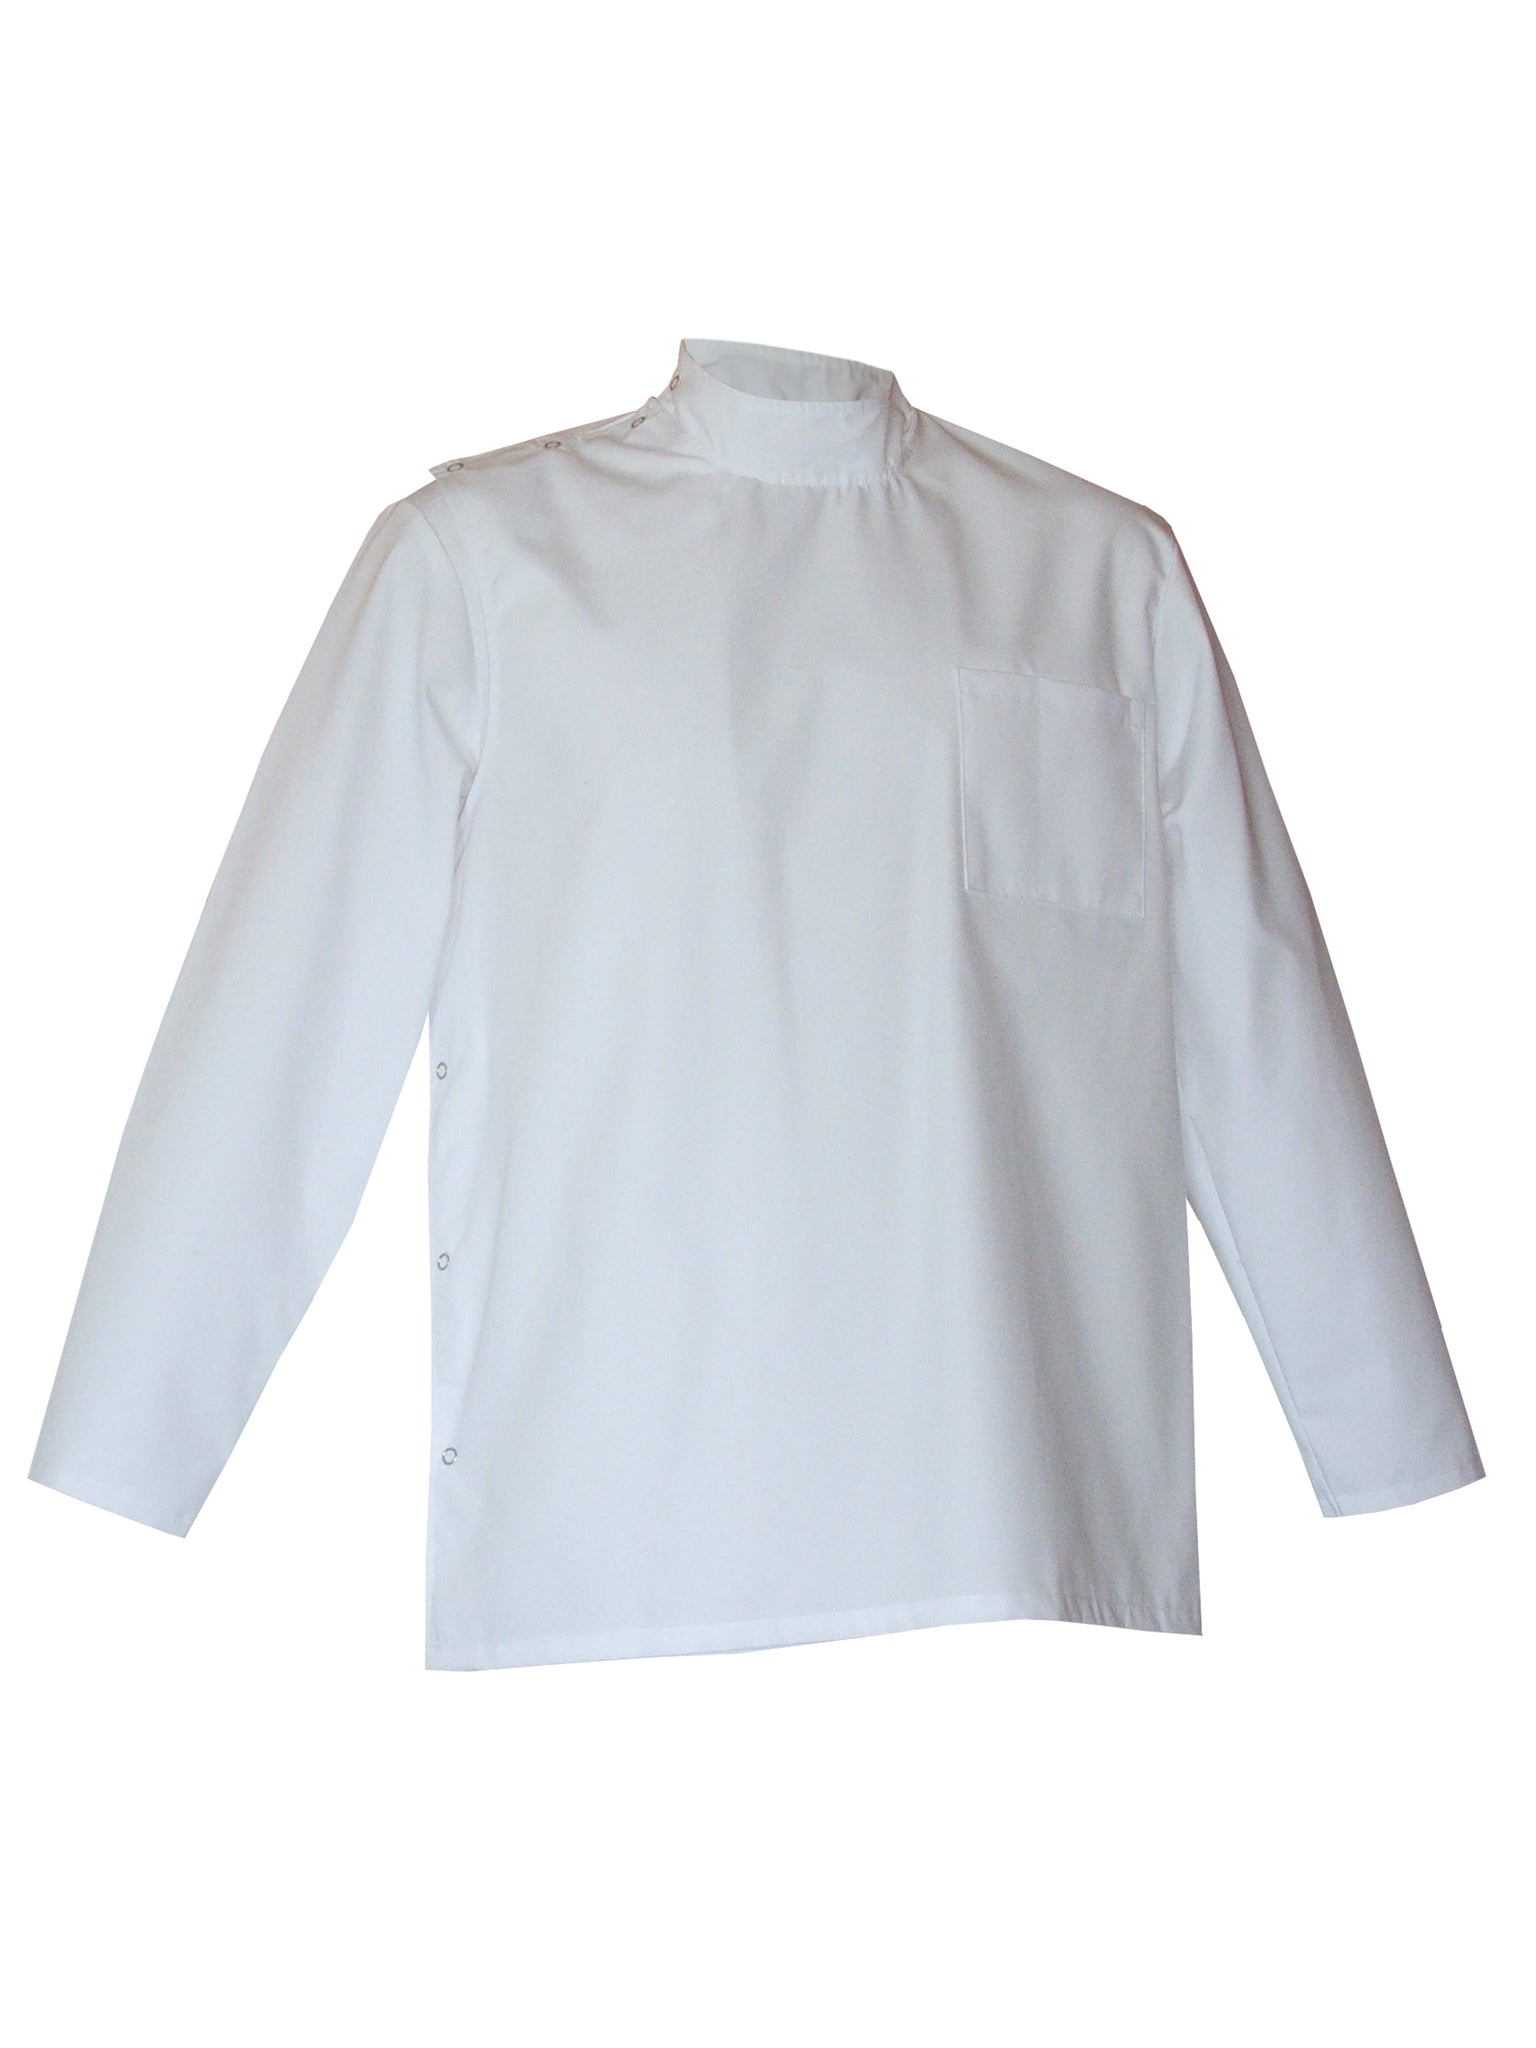 Dispensing Jacket - White